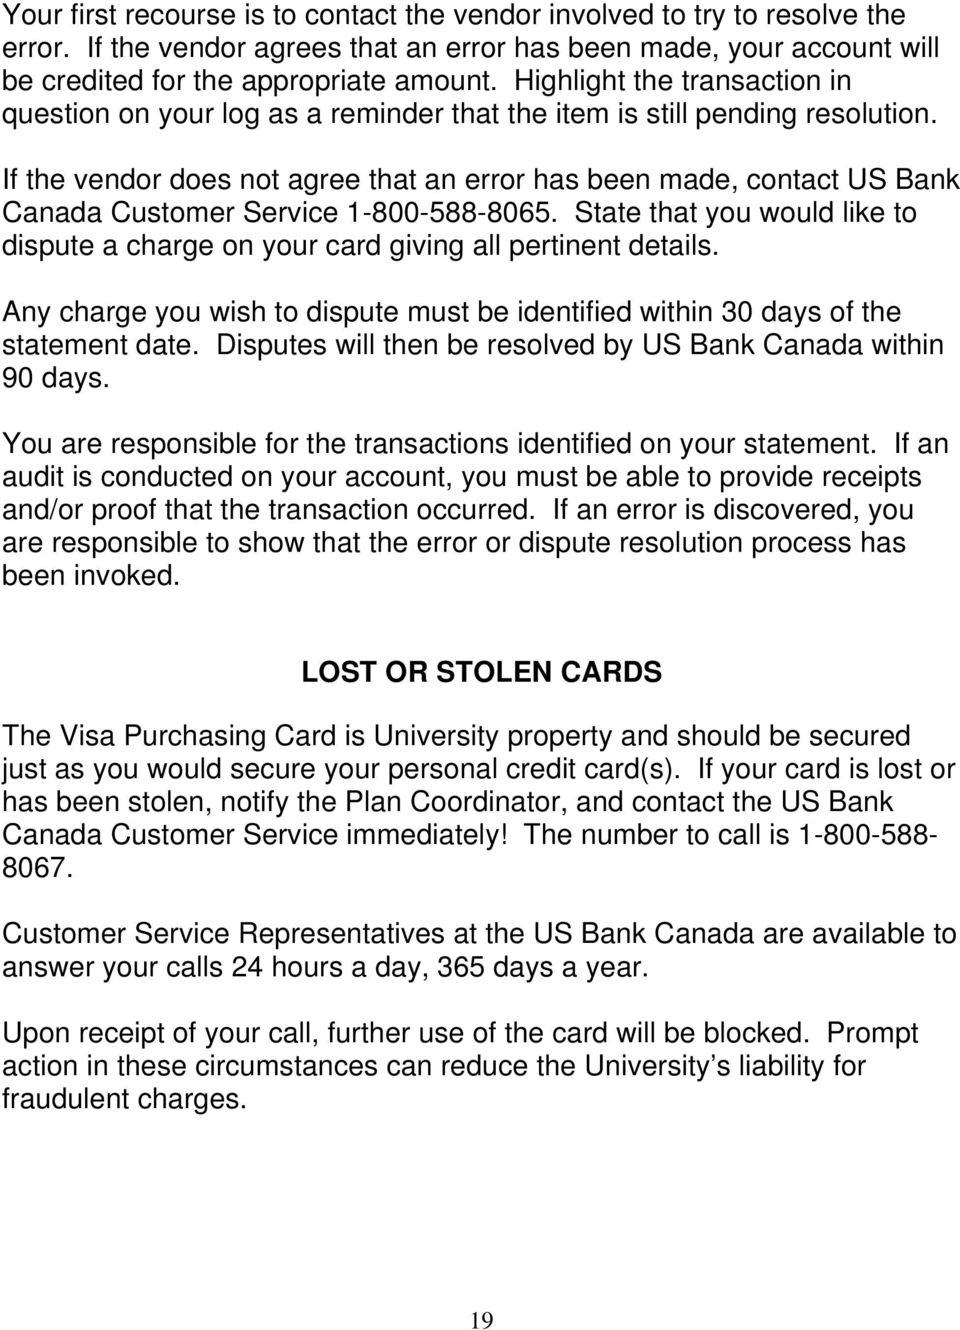 If the vendor does not agree that an error has been made, contact US Bank Canada Customer Service 1-800-588-8065.